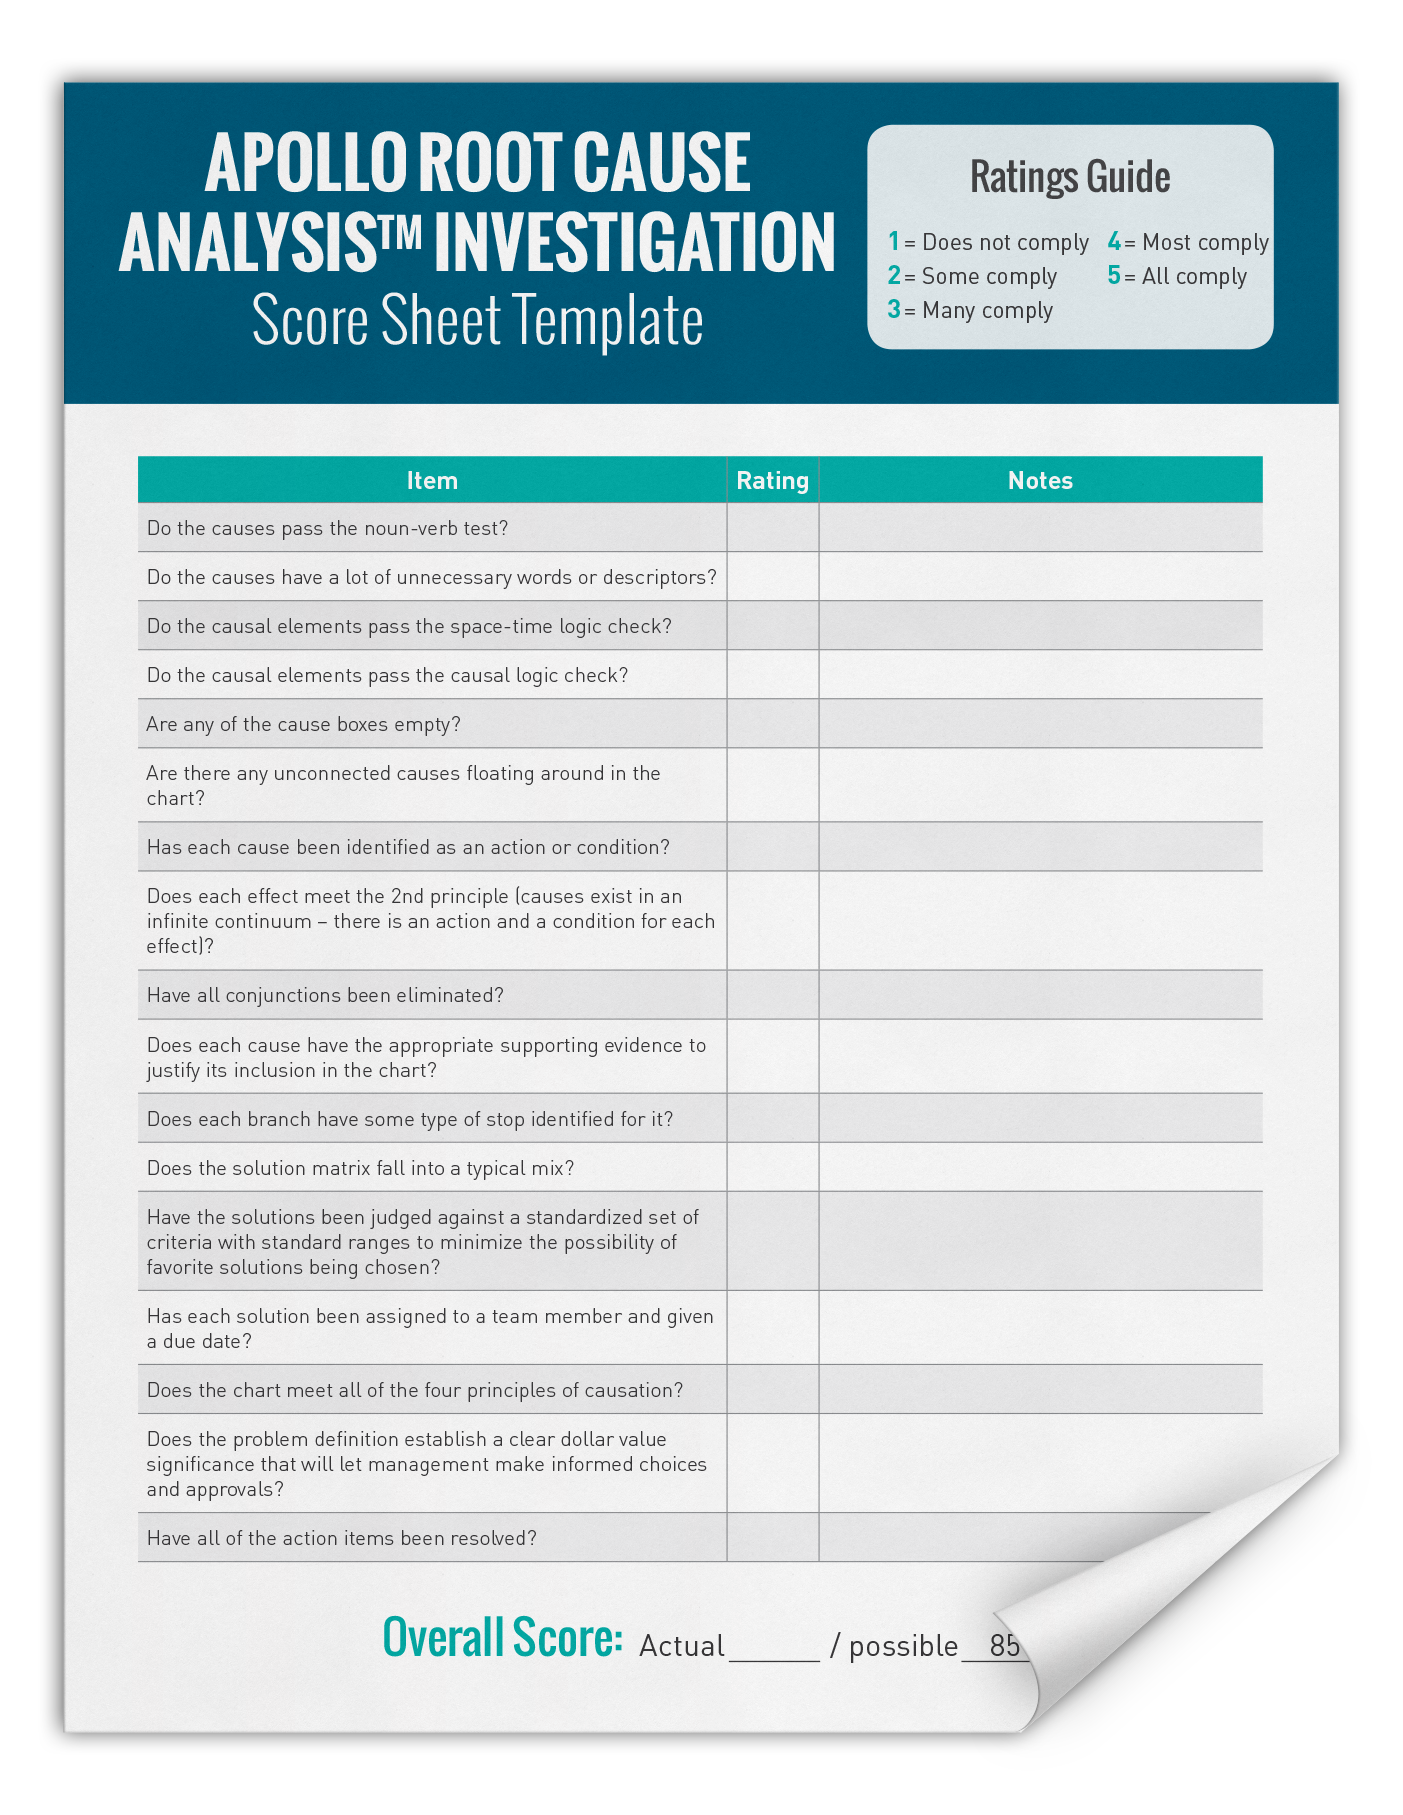 RCAInvestigationScoreSheet_Mock-up